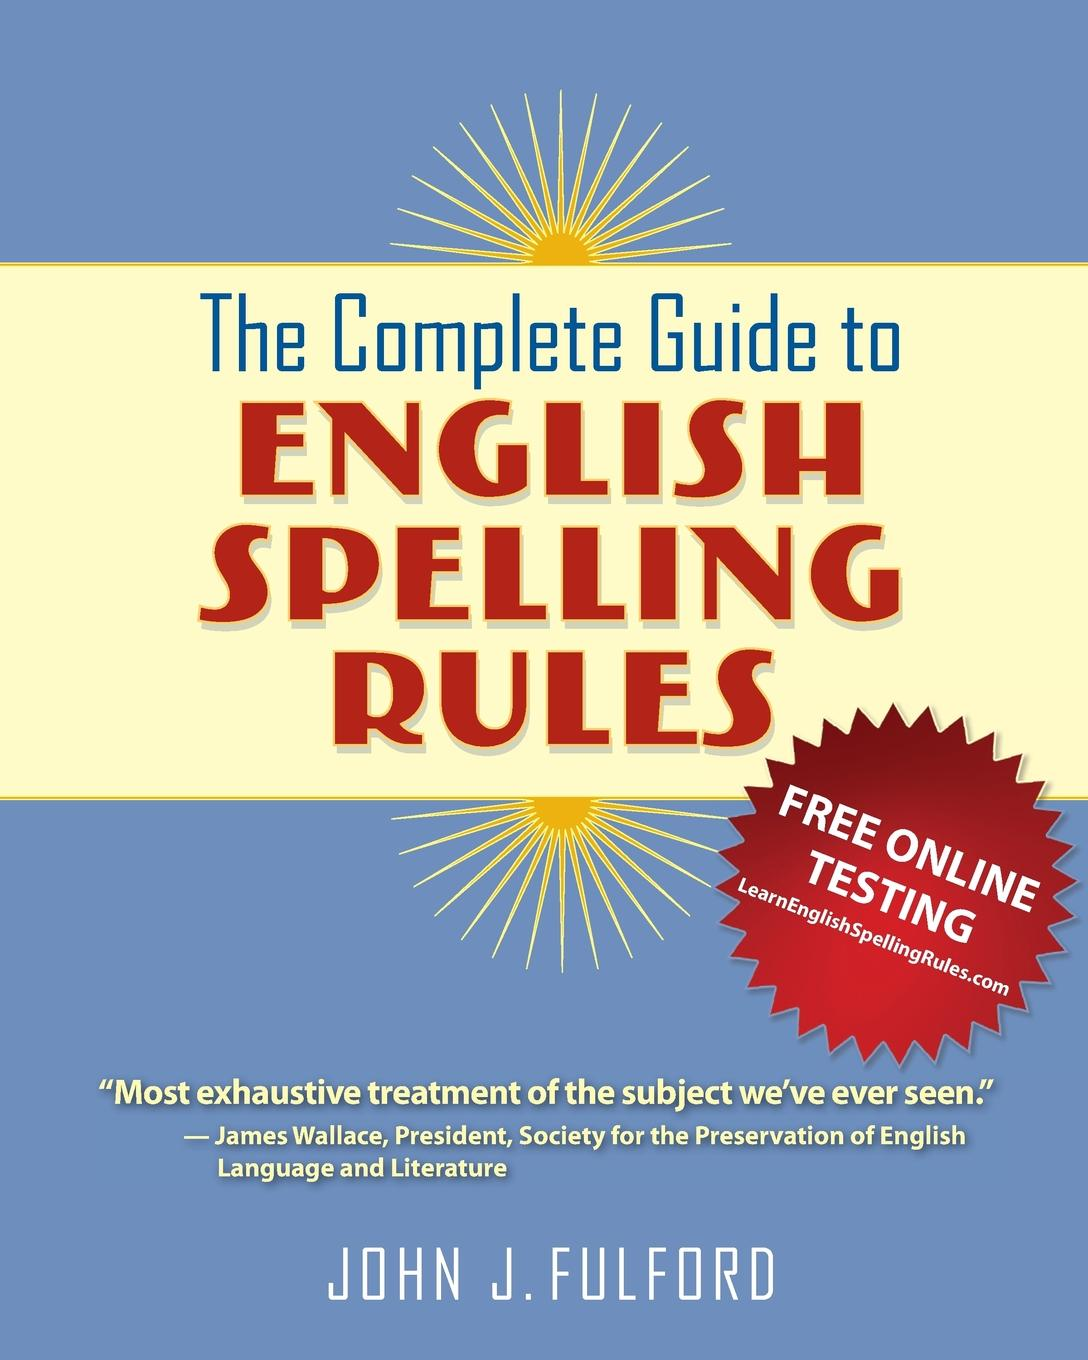 John J Fulford The Complete Guide to English Spelling Rules john d niles old english literature a guide to criticism with selected readings